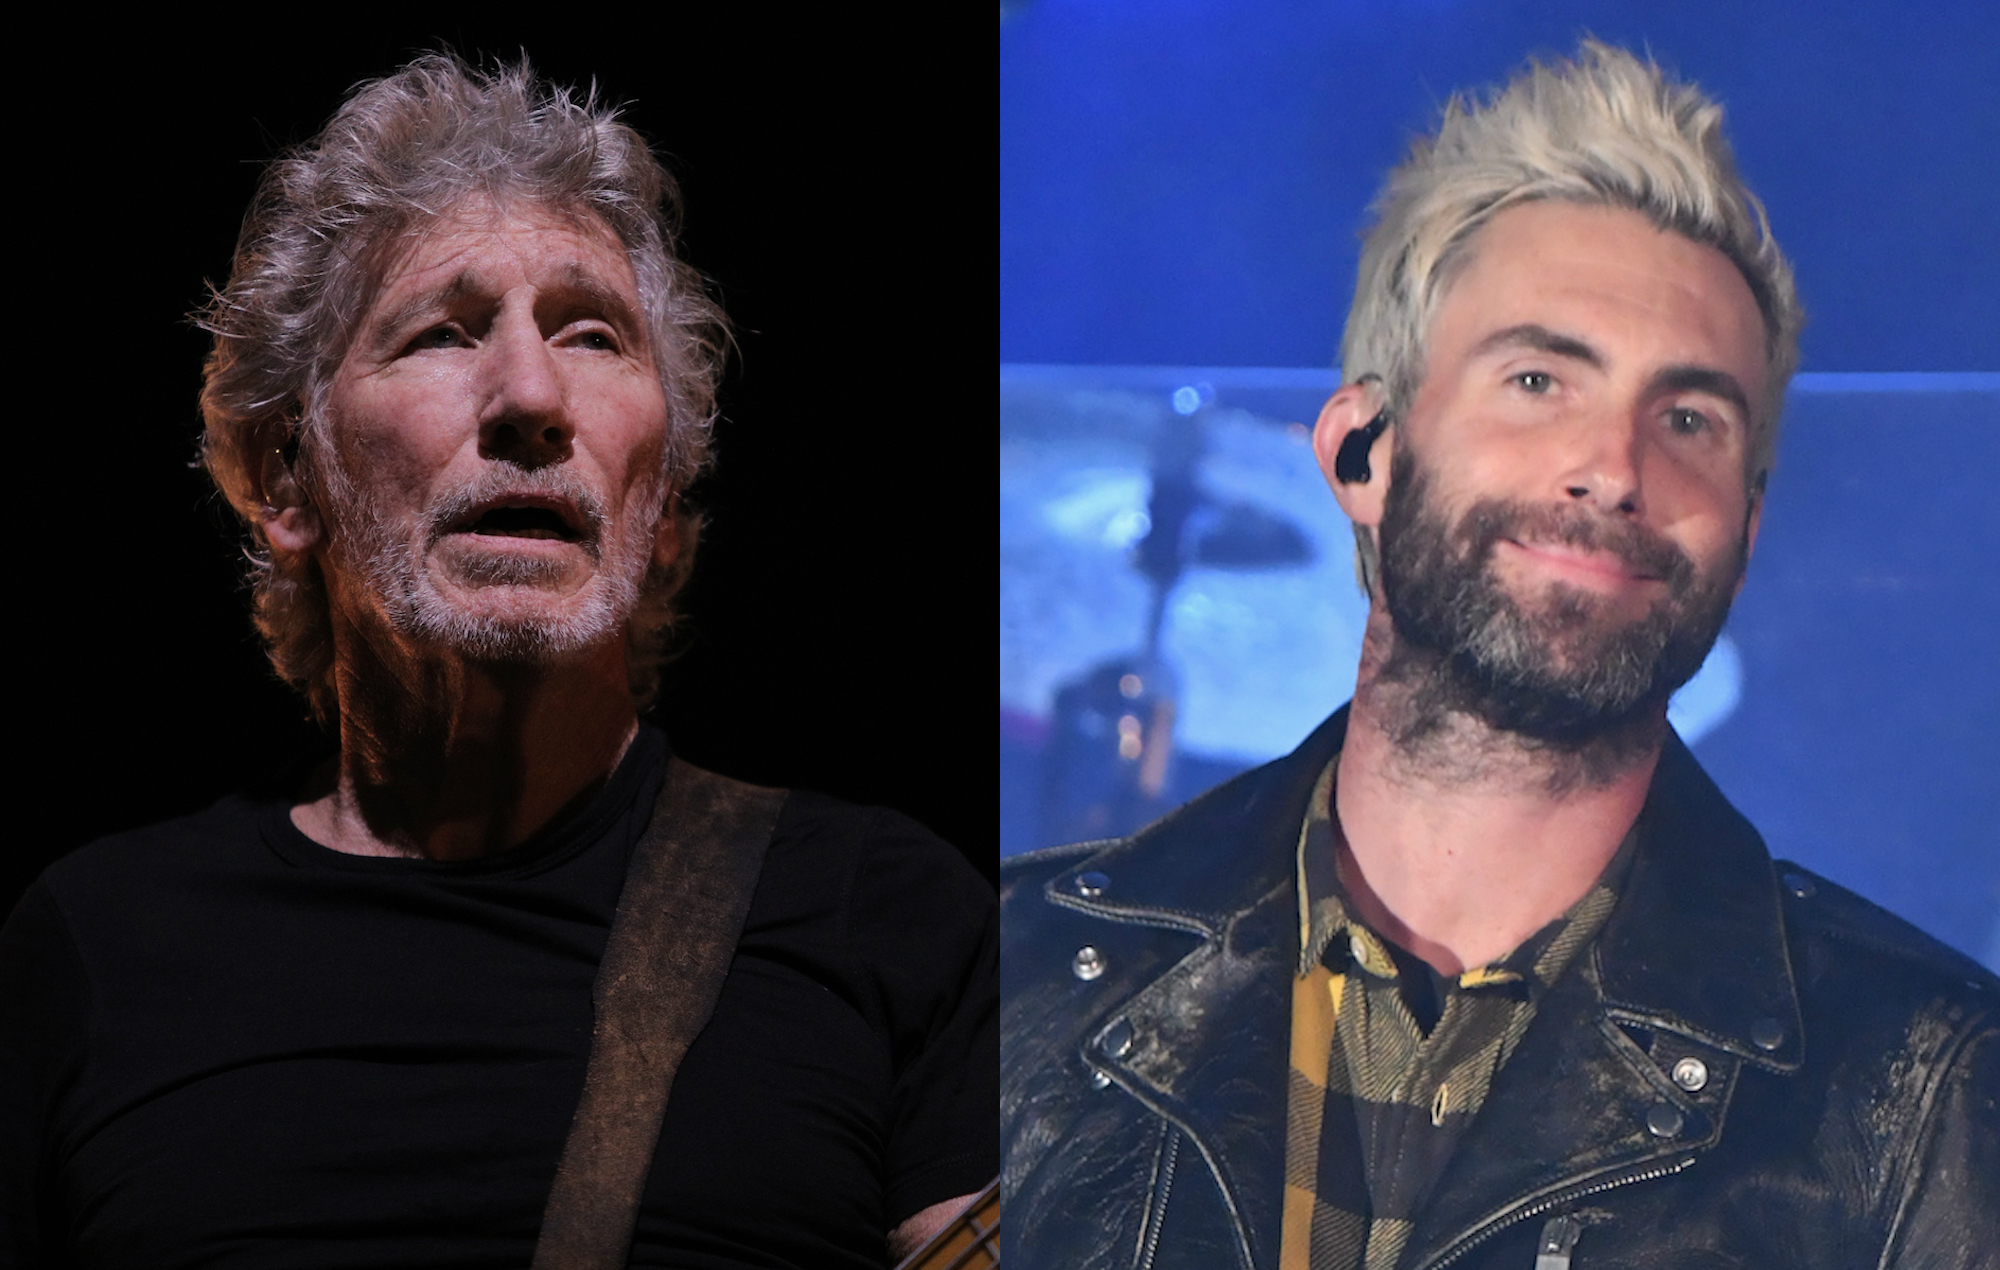 pink floyd 39 s roger waters ask maroon 5 to 39 take a knee 39 during super bowl halftime show. Black Bedroom Furniture Sets. Home Design Ideas